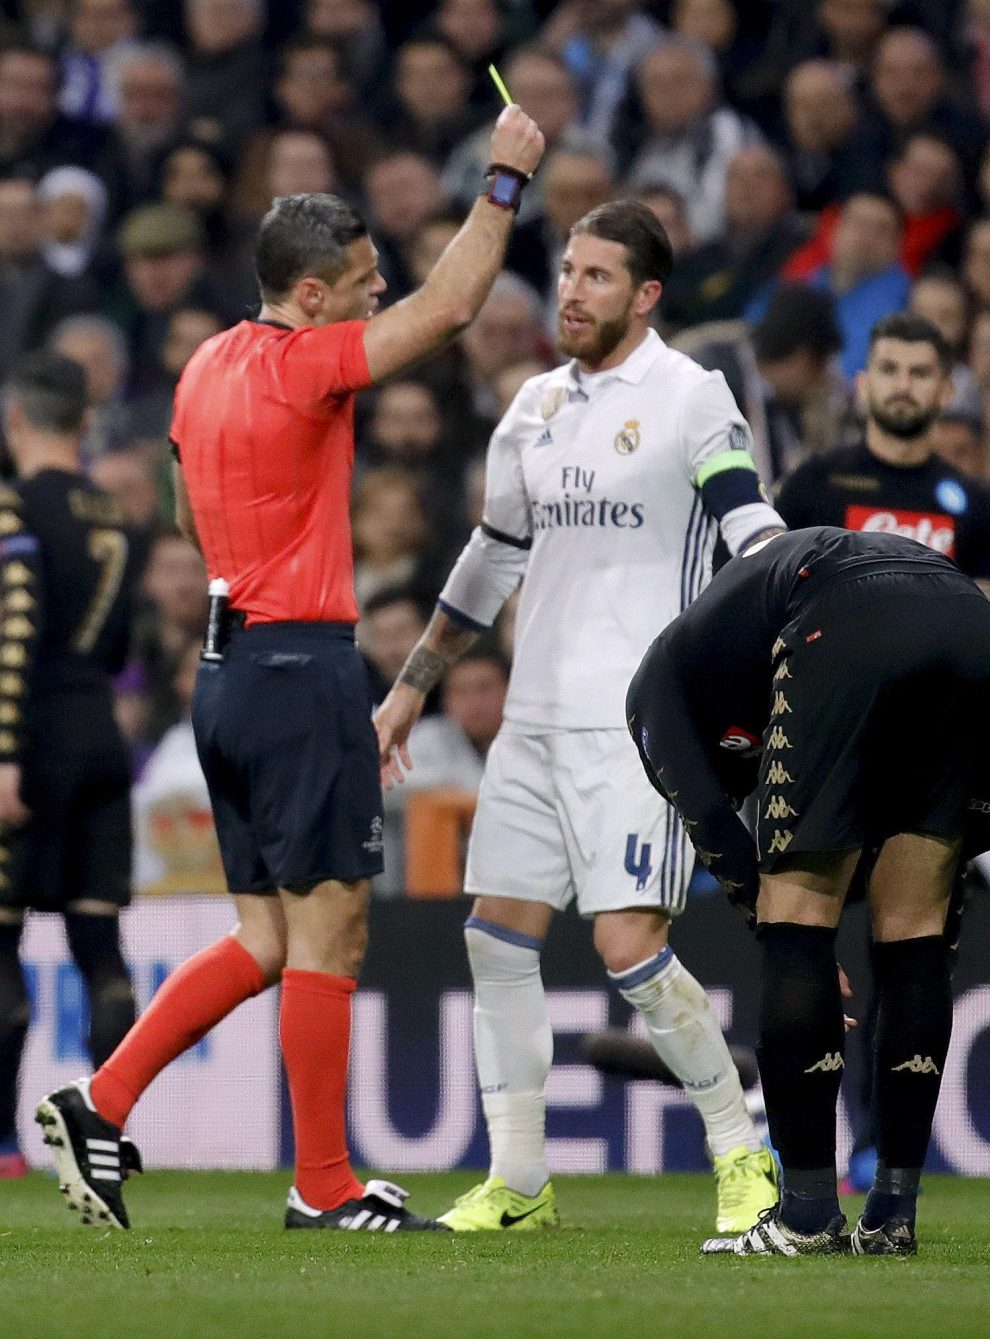 Slovenian referee Damir Skomina (L) gives a yellow card to Real Madrid's defender Sergio Ramos during the UEFA Champions League round of 16 match between Real Madrid and Napoli at Santiago Bernabeu stadium in Madrid, Spain, 15 February 2017. EFE/JuanJo Martin